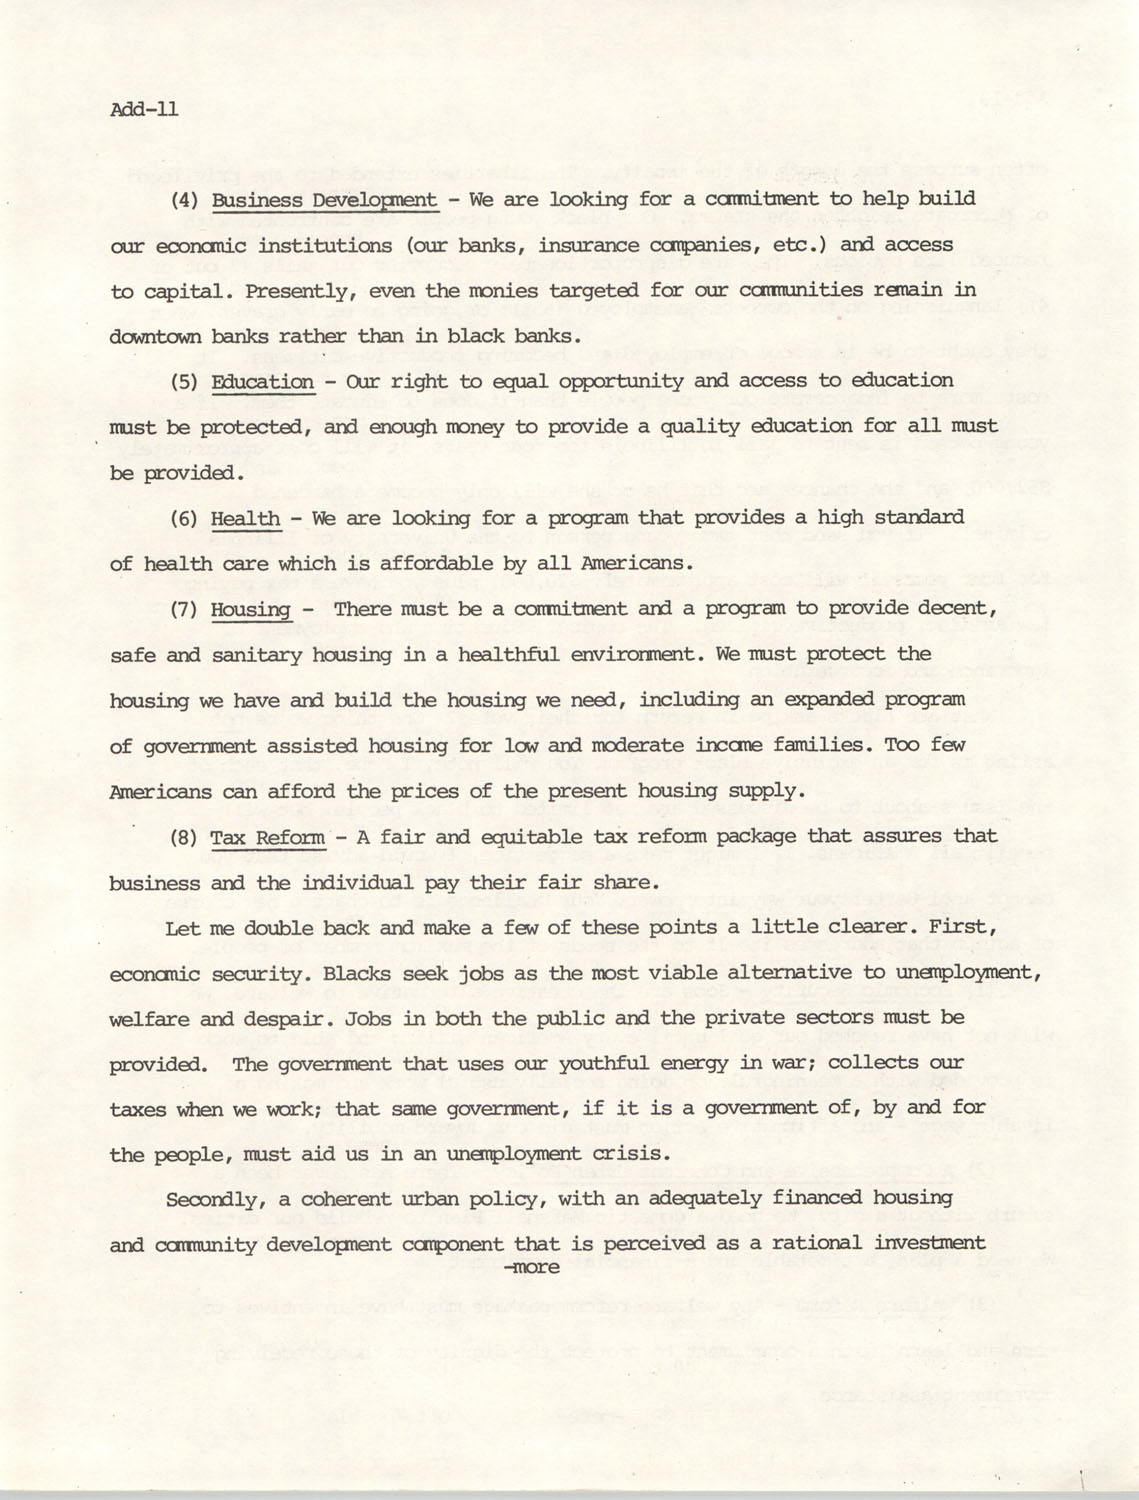 Speech Before the Republican National Committee, Page 11